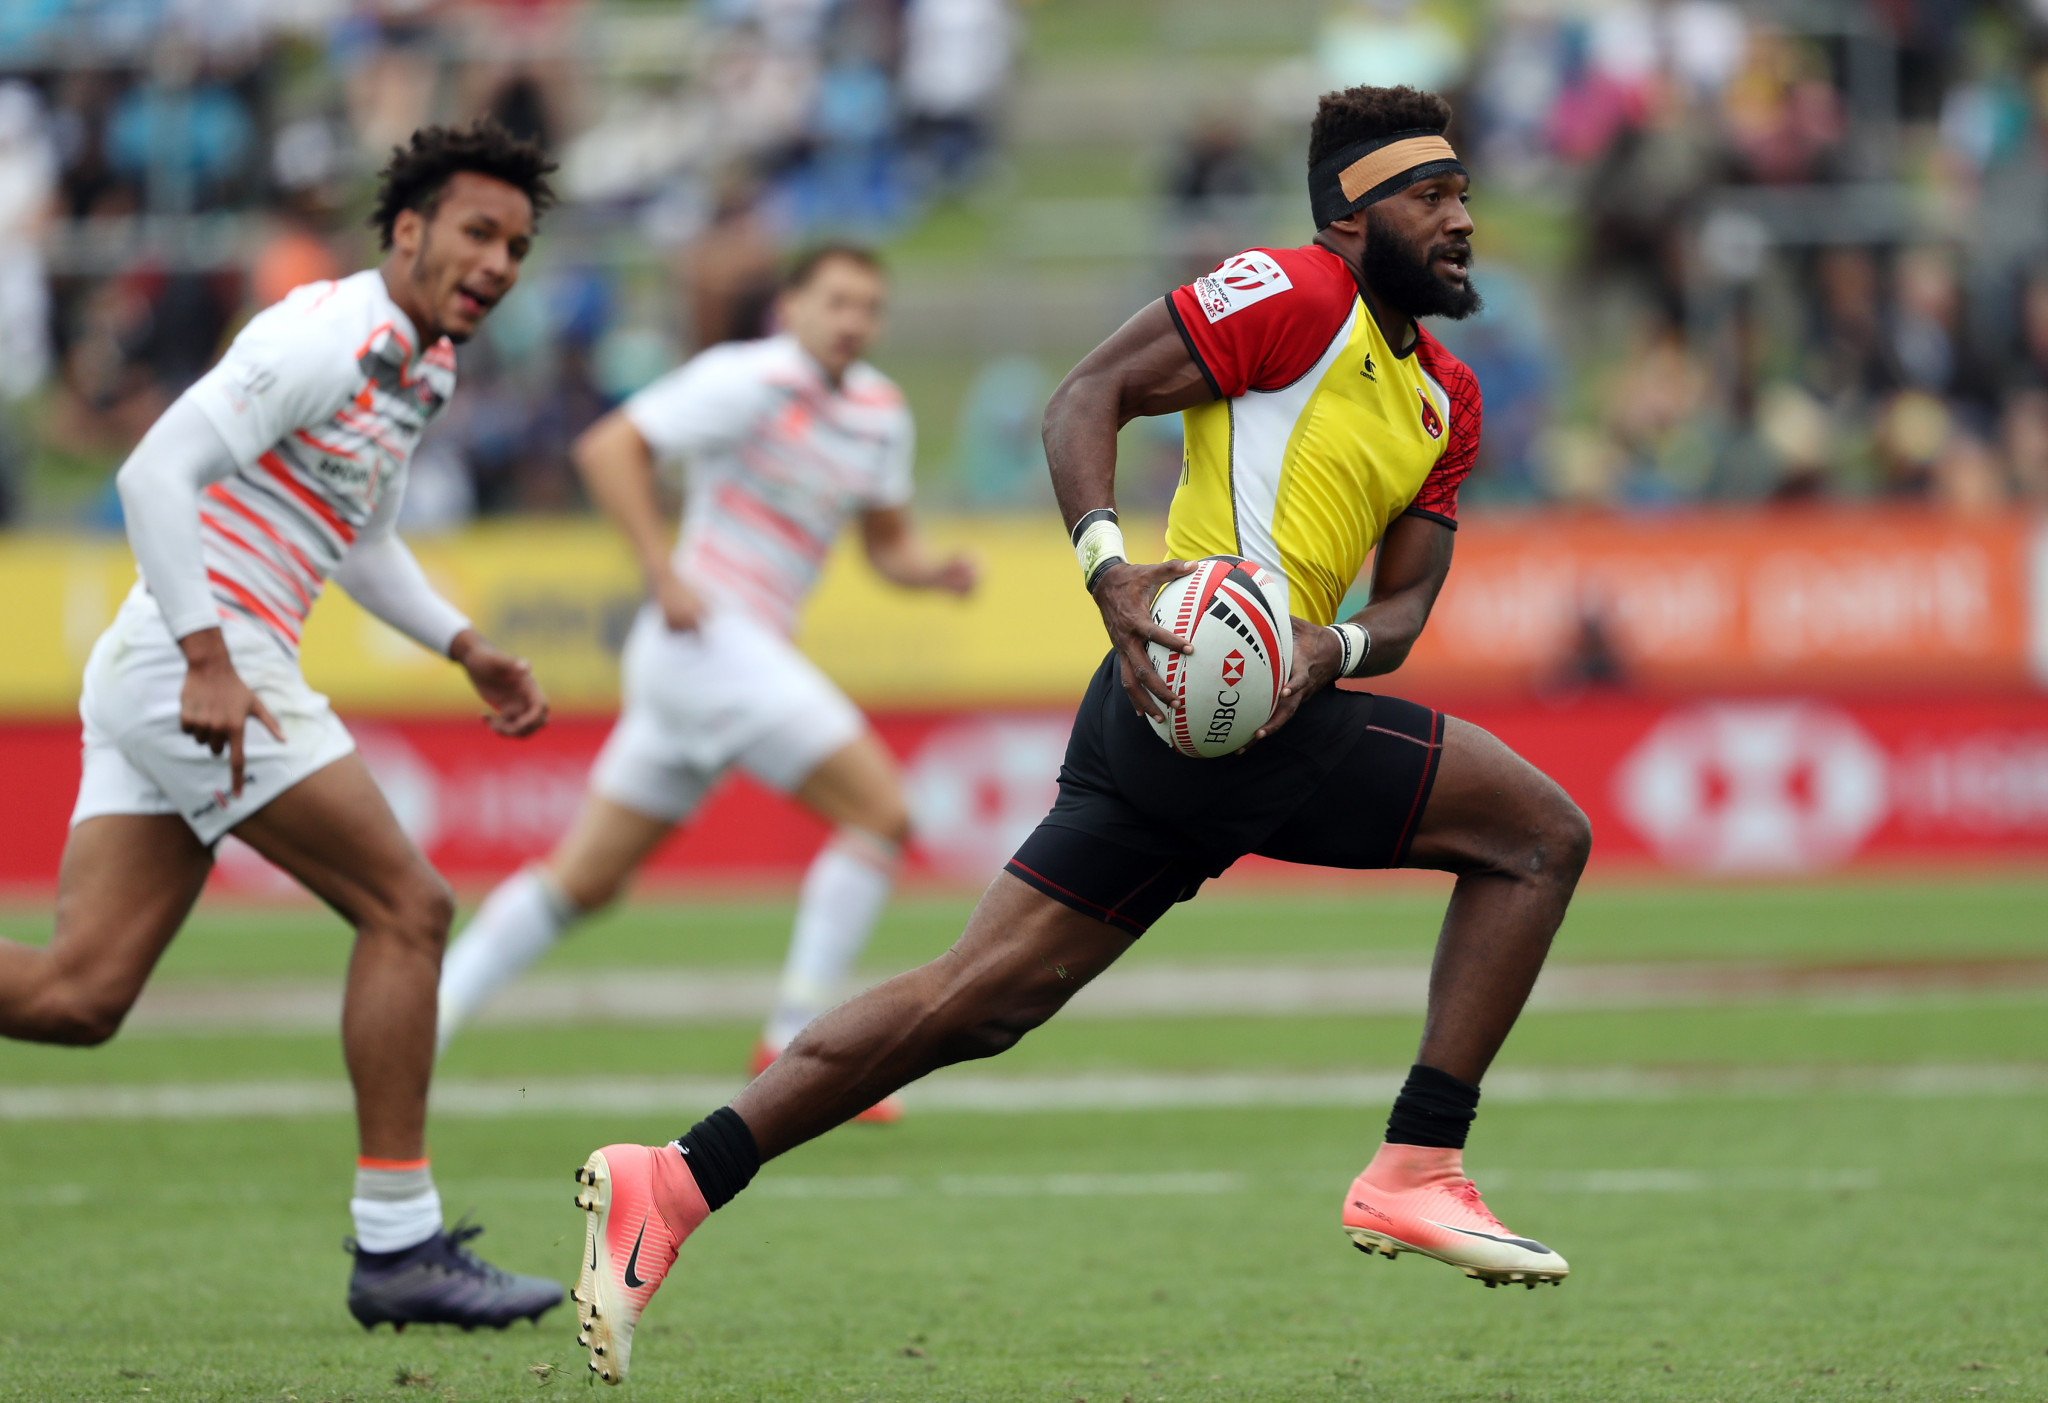 Papua New Guinea's rugby sevens team is aiming to qualify for Tokyo 2020 ©Getty Images